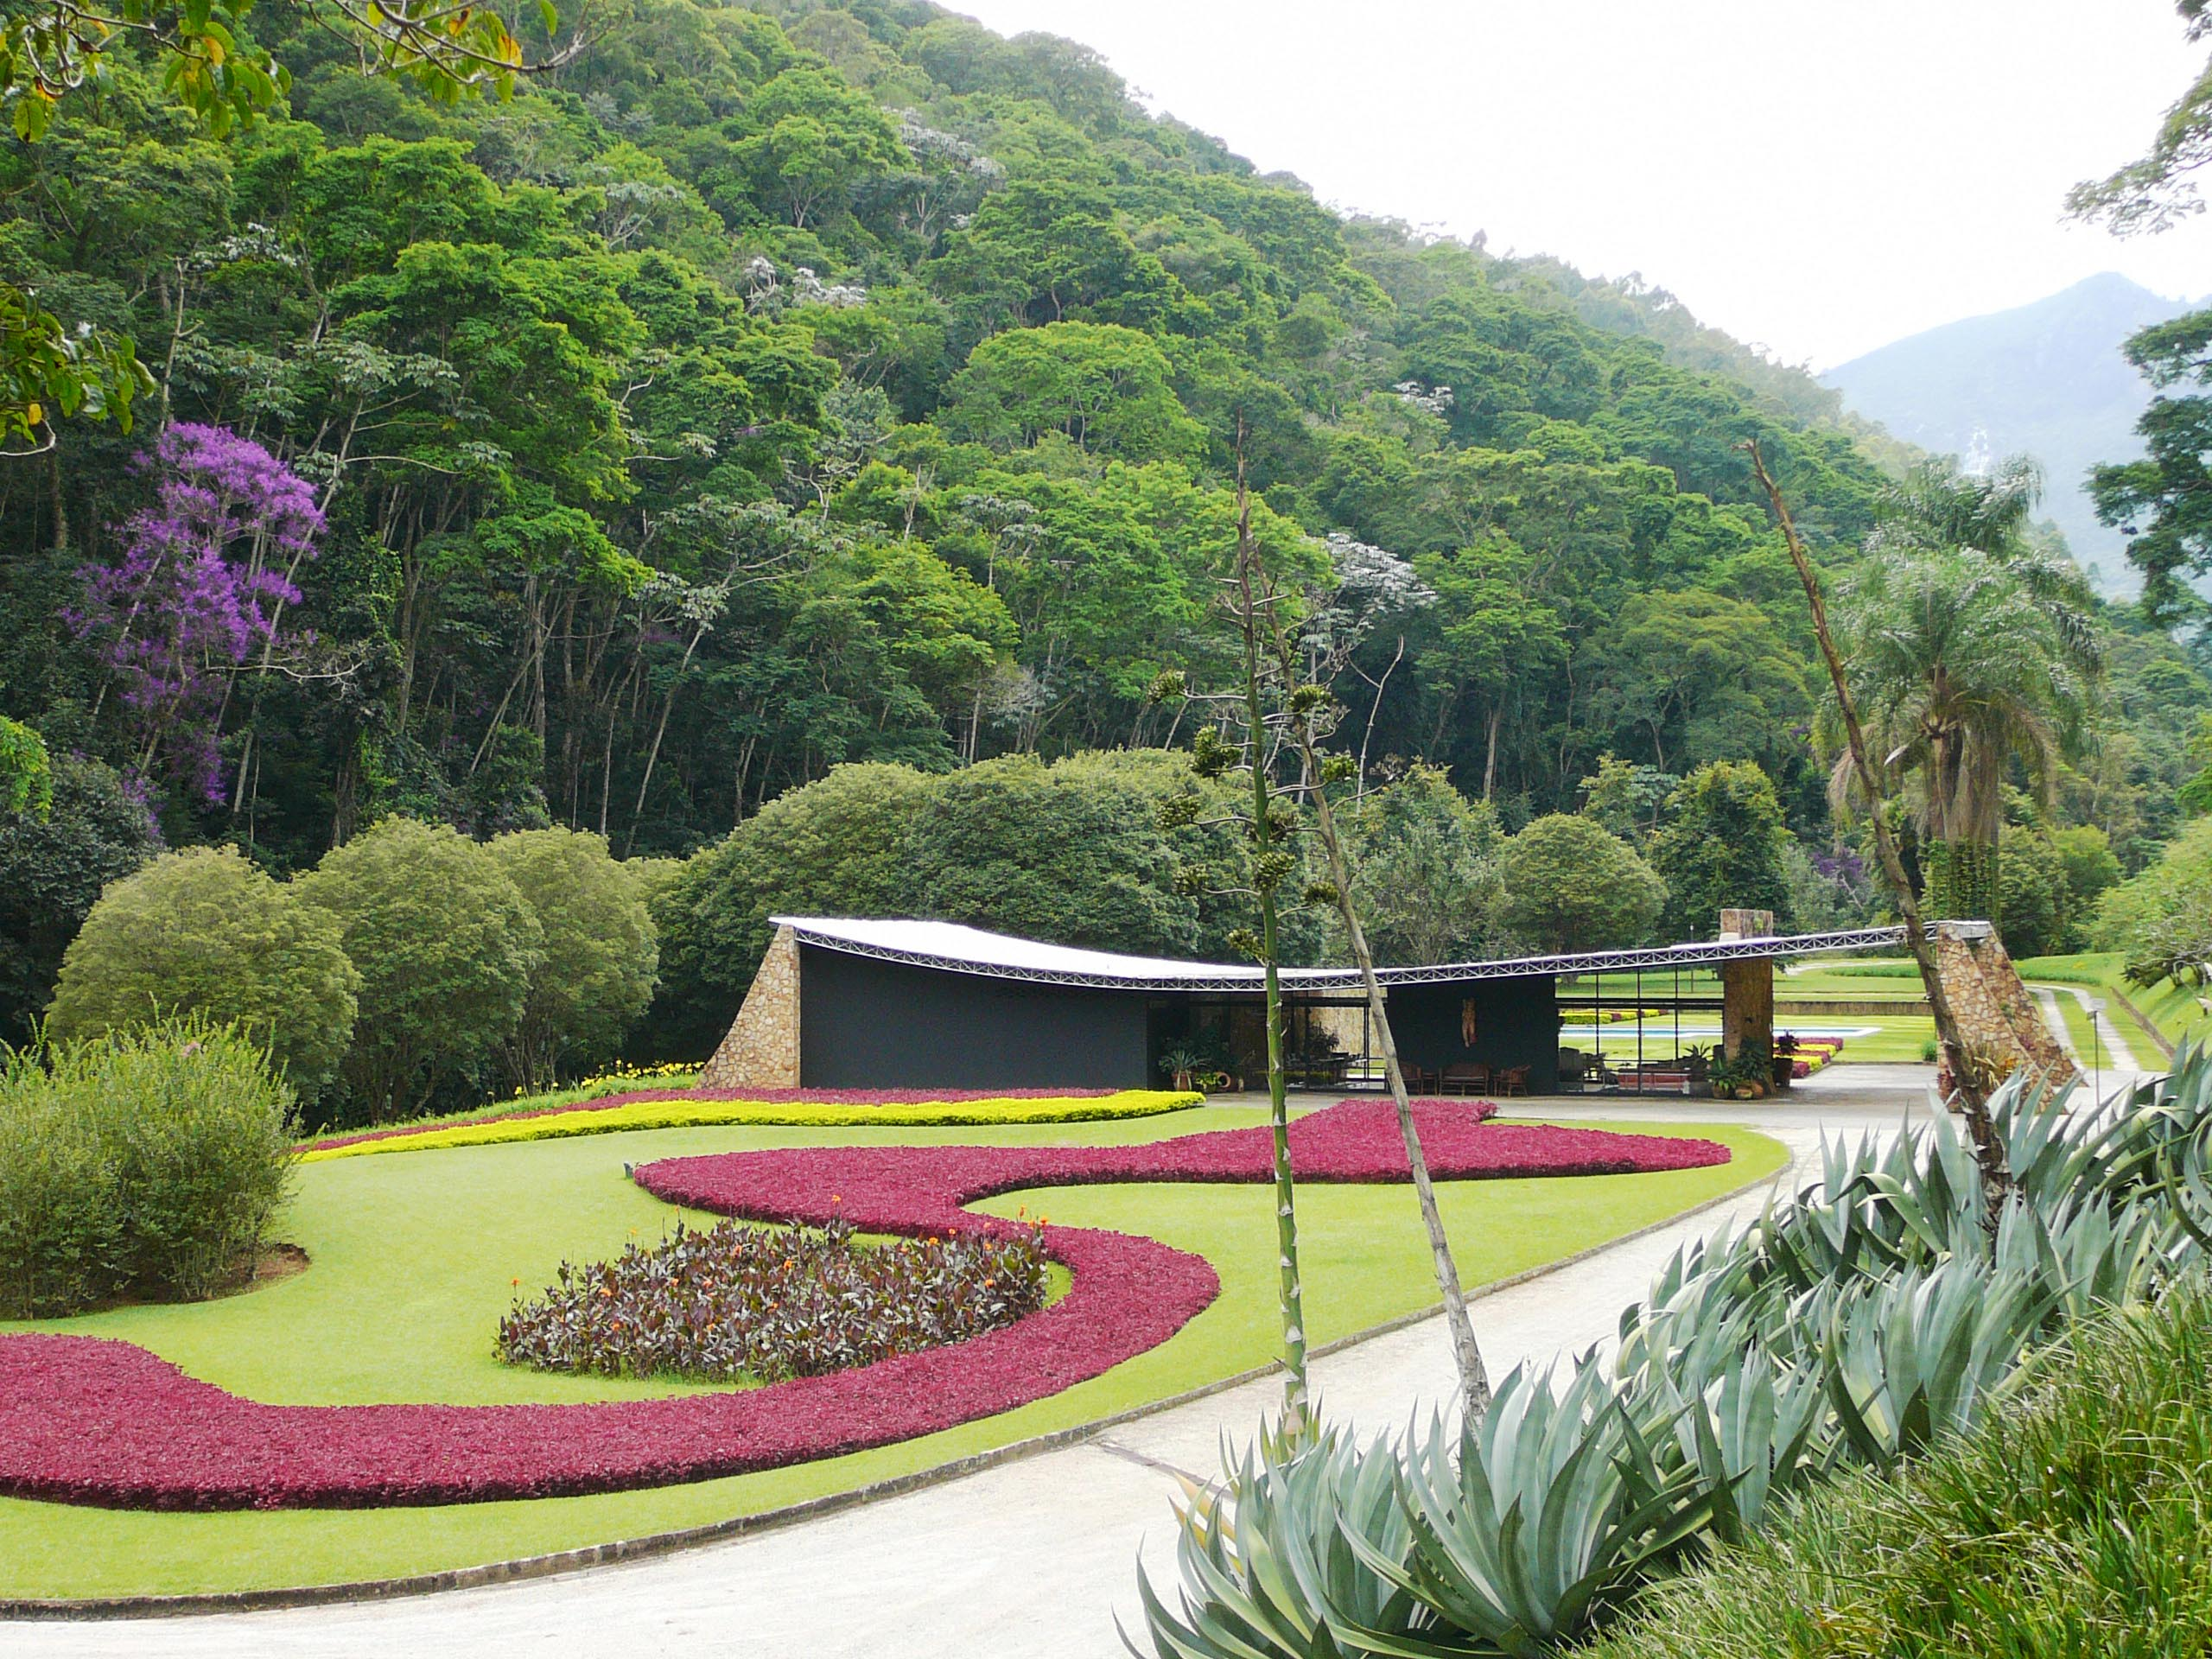 Burle marx arte vegetal for Fotos paisajistas